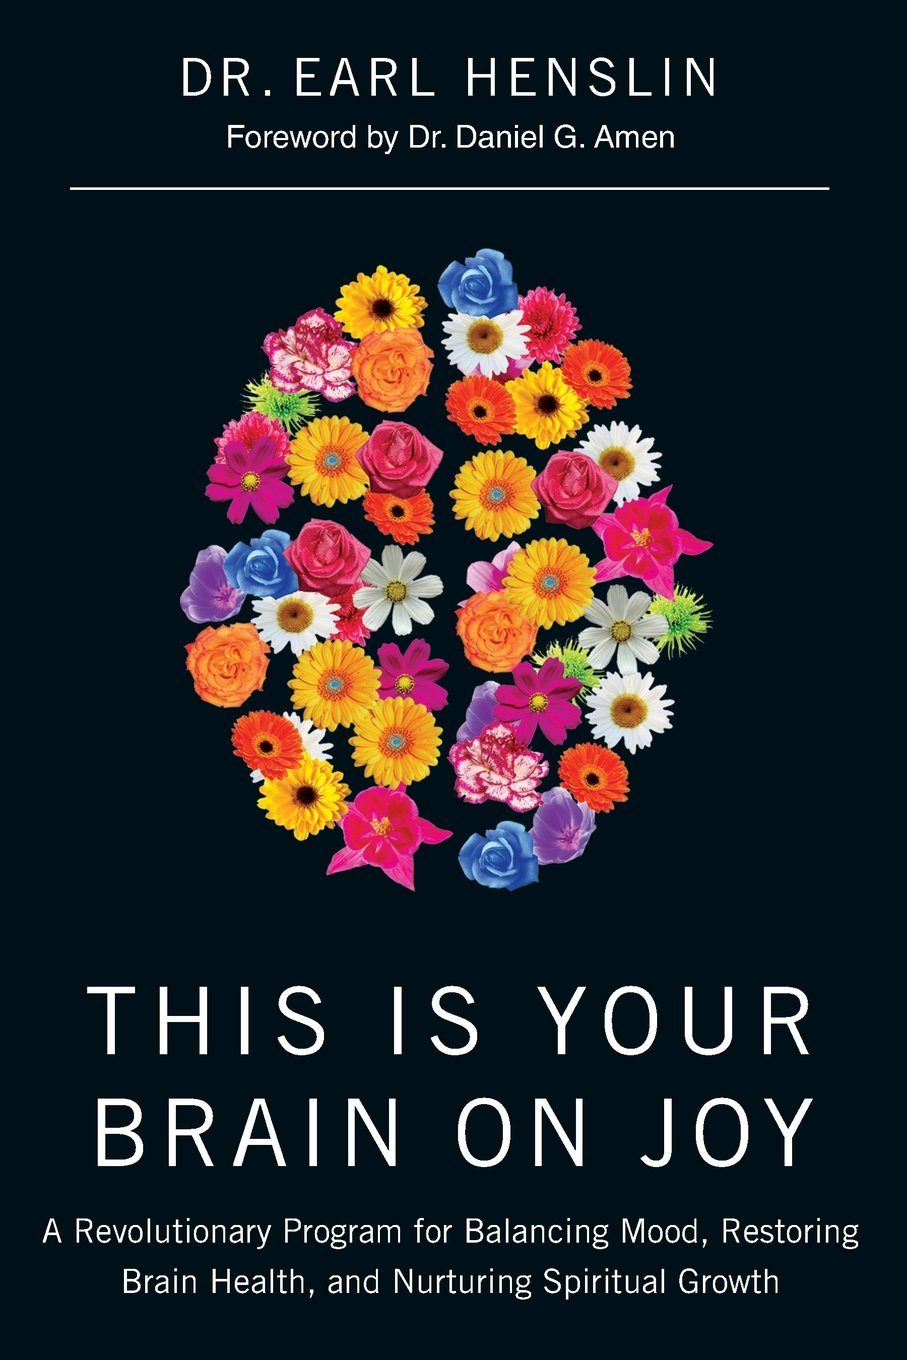 BRAIN ON JOY